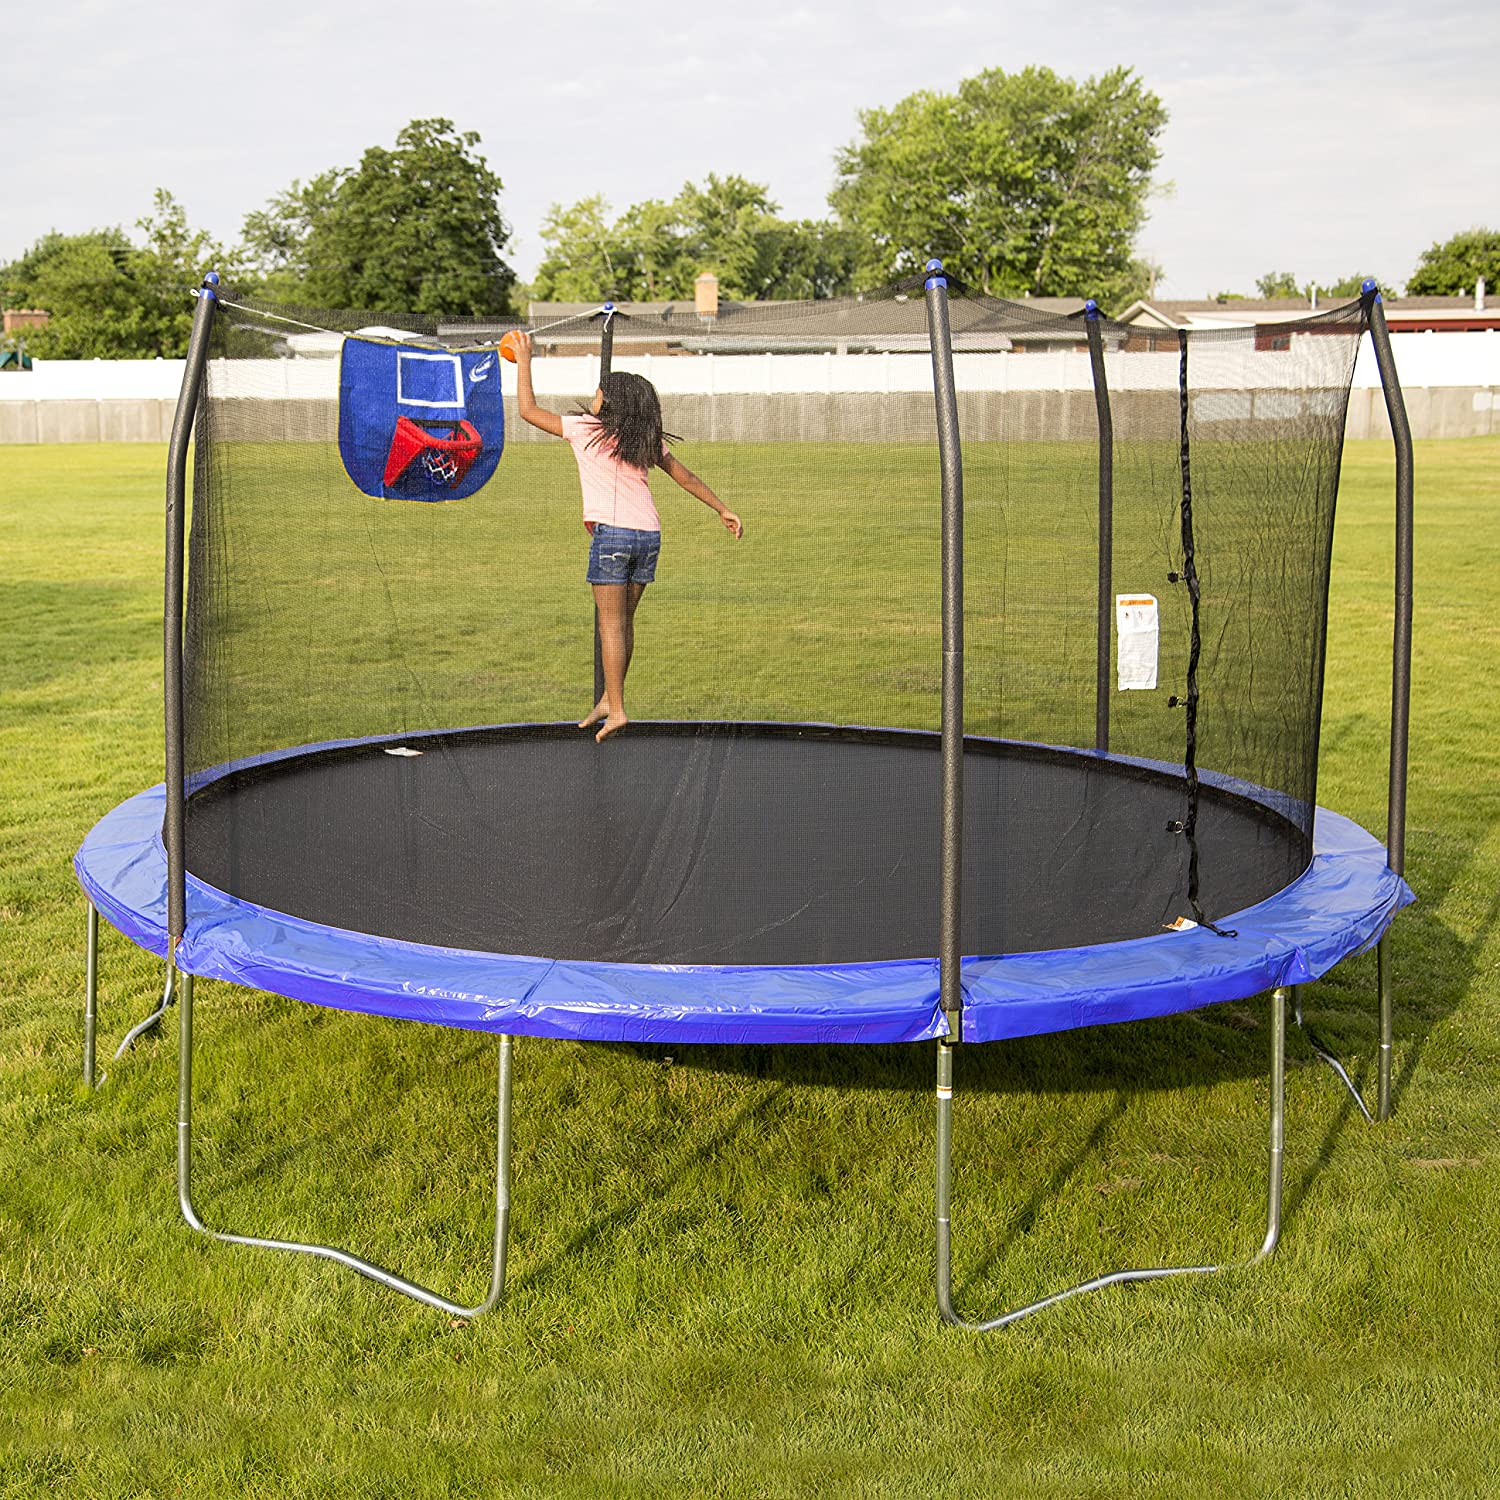 Skywalker 15 ft Round Trampoline – Best Extra Fun Features